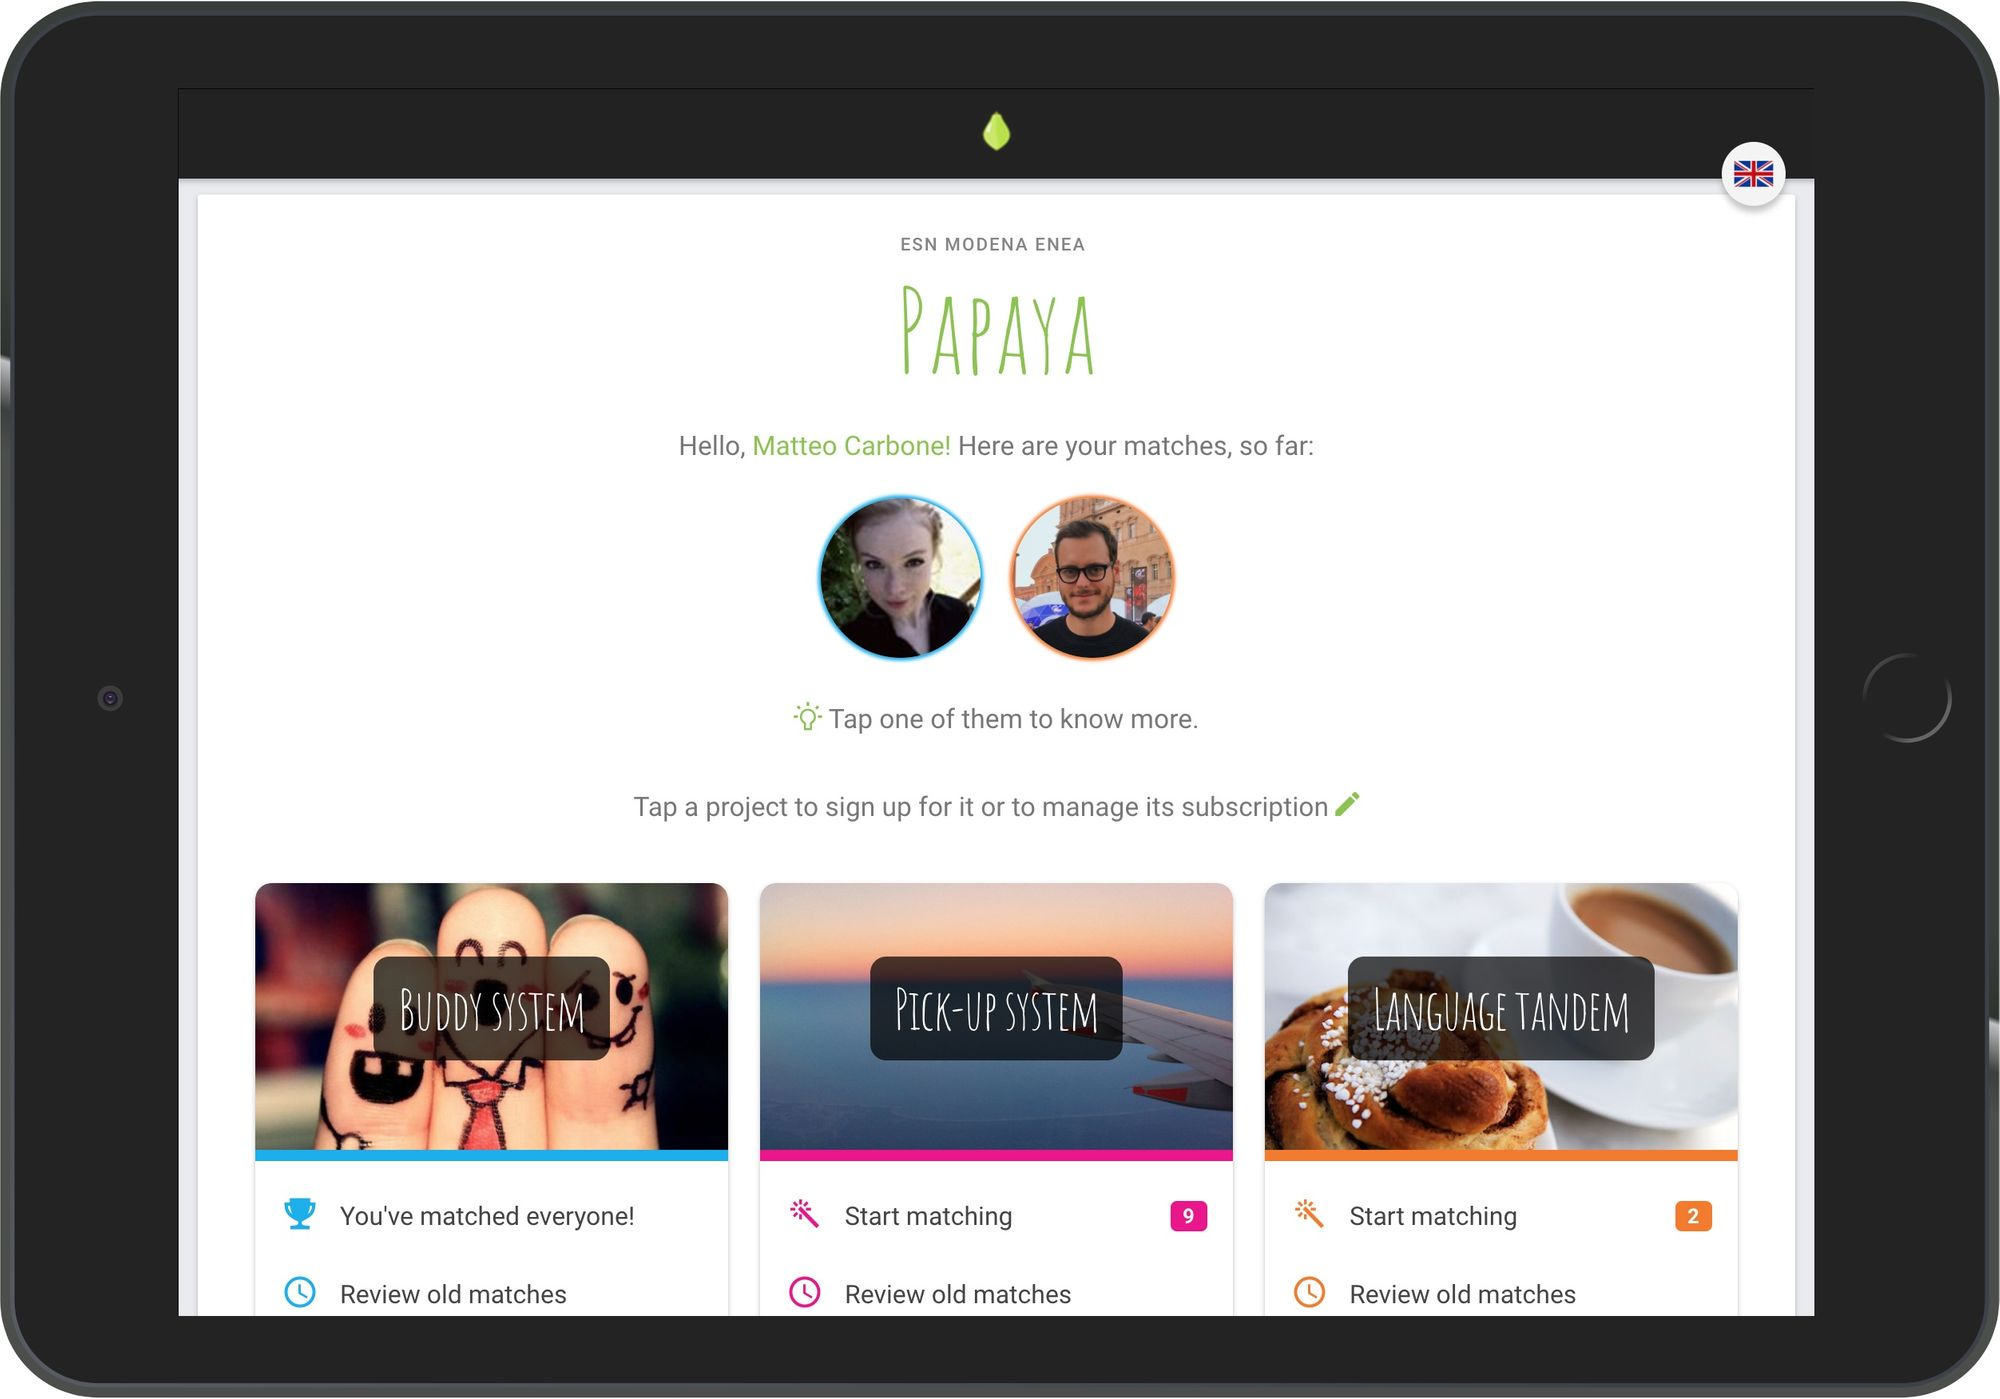 The new UI of Papaya